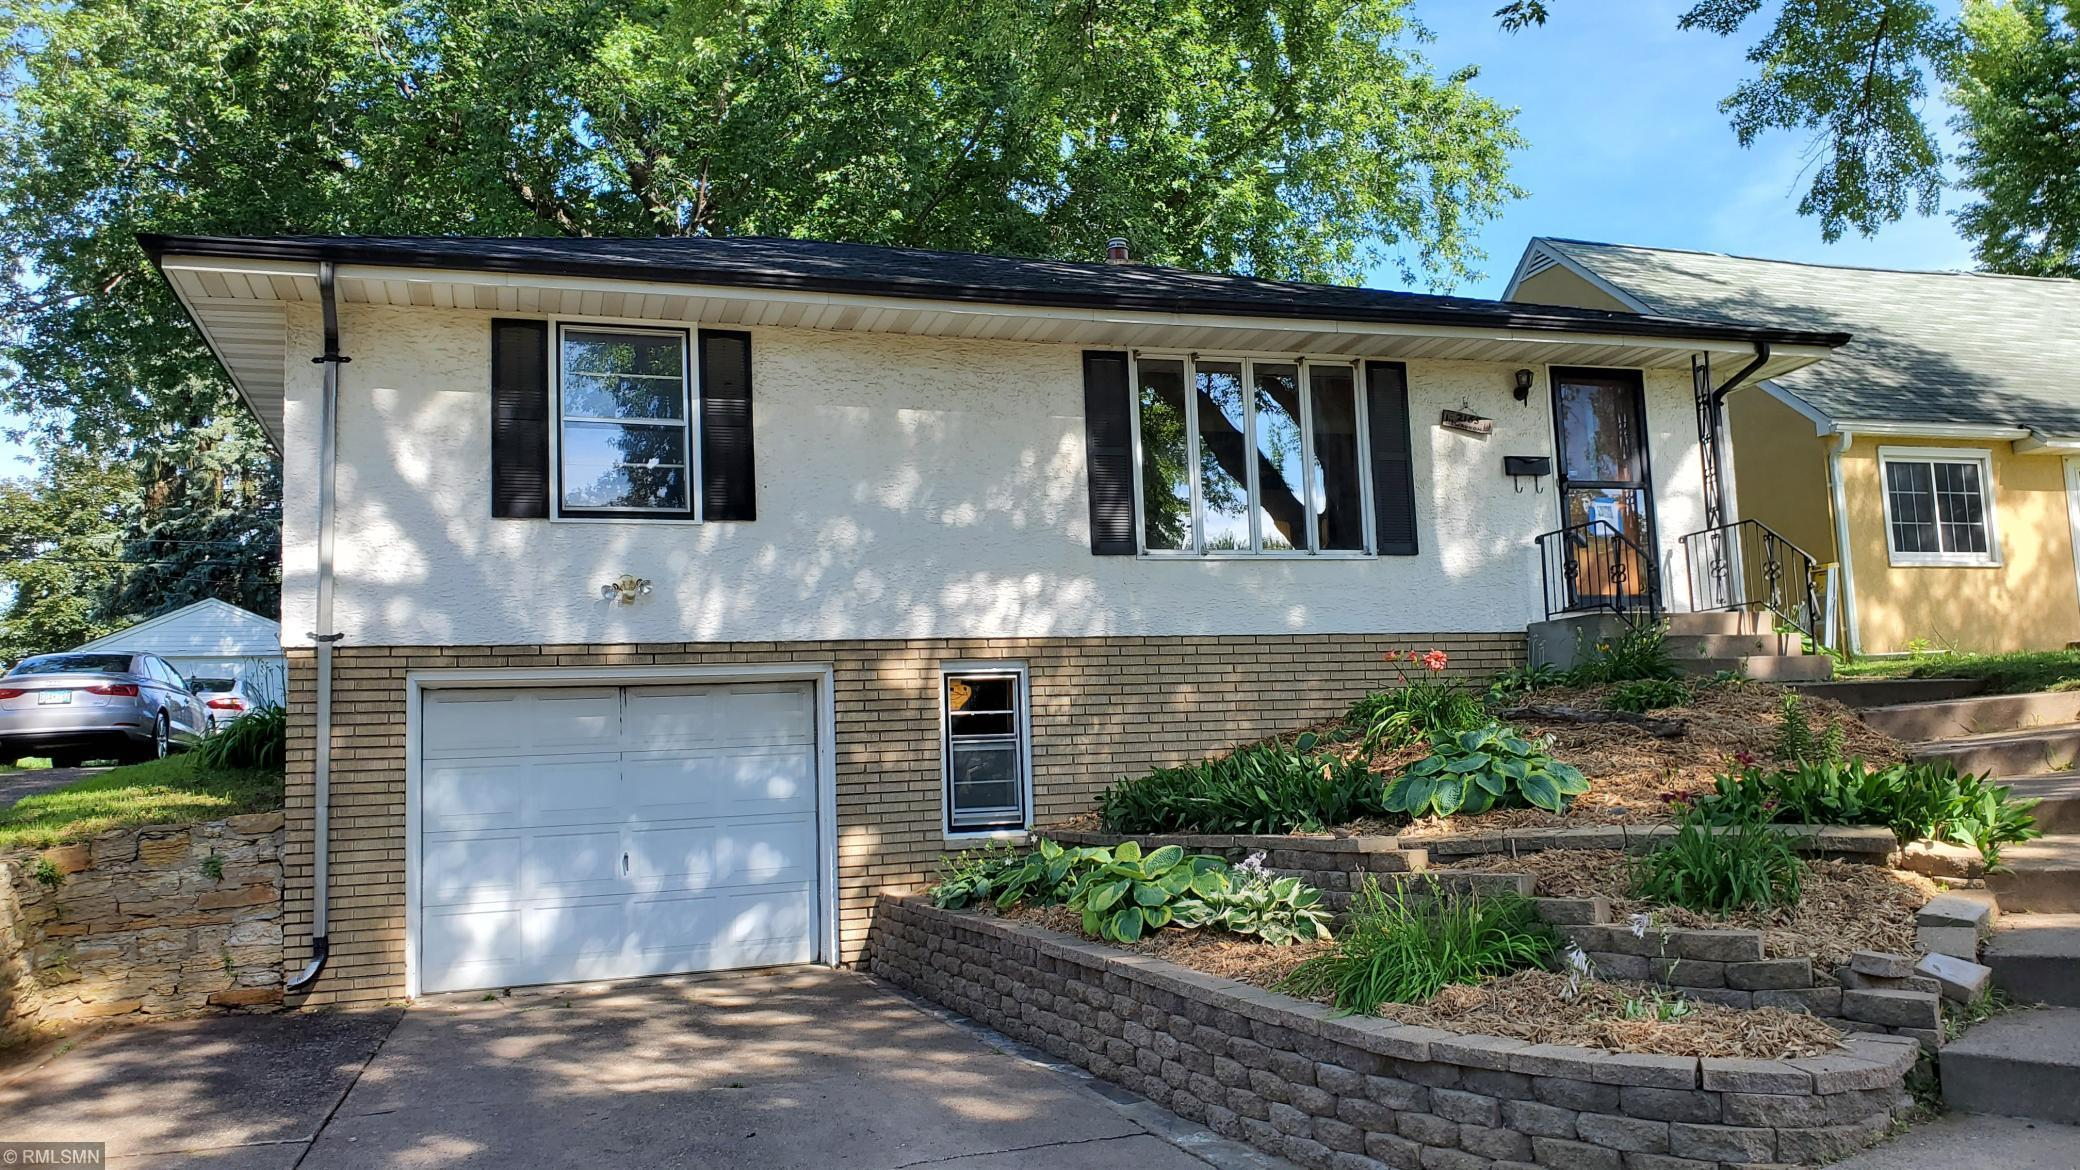 2155 Waukon Property Photo - Saint Paul, MN real estate listing